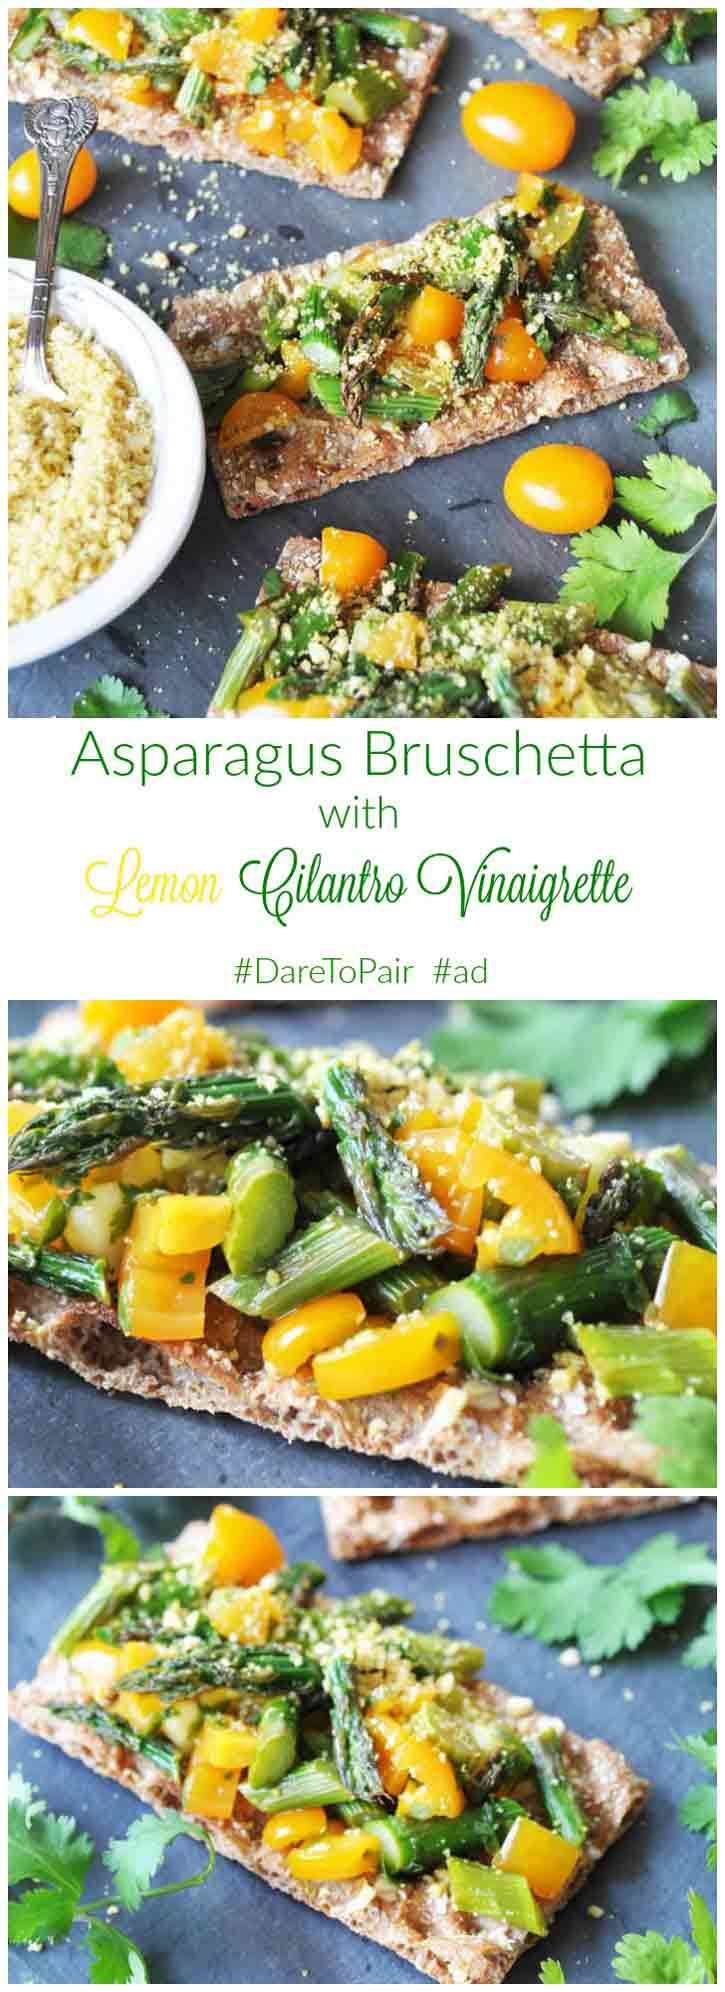 Asparagus Bruschetta with Lemon Cilantro Vinaigrette! Only 6 ingredients in this bright, beautiful, and delicious recipe. Perfect for your next get together or for a light meal. www.veganosity.com